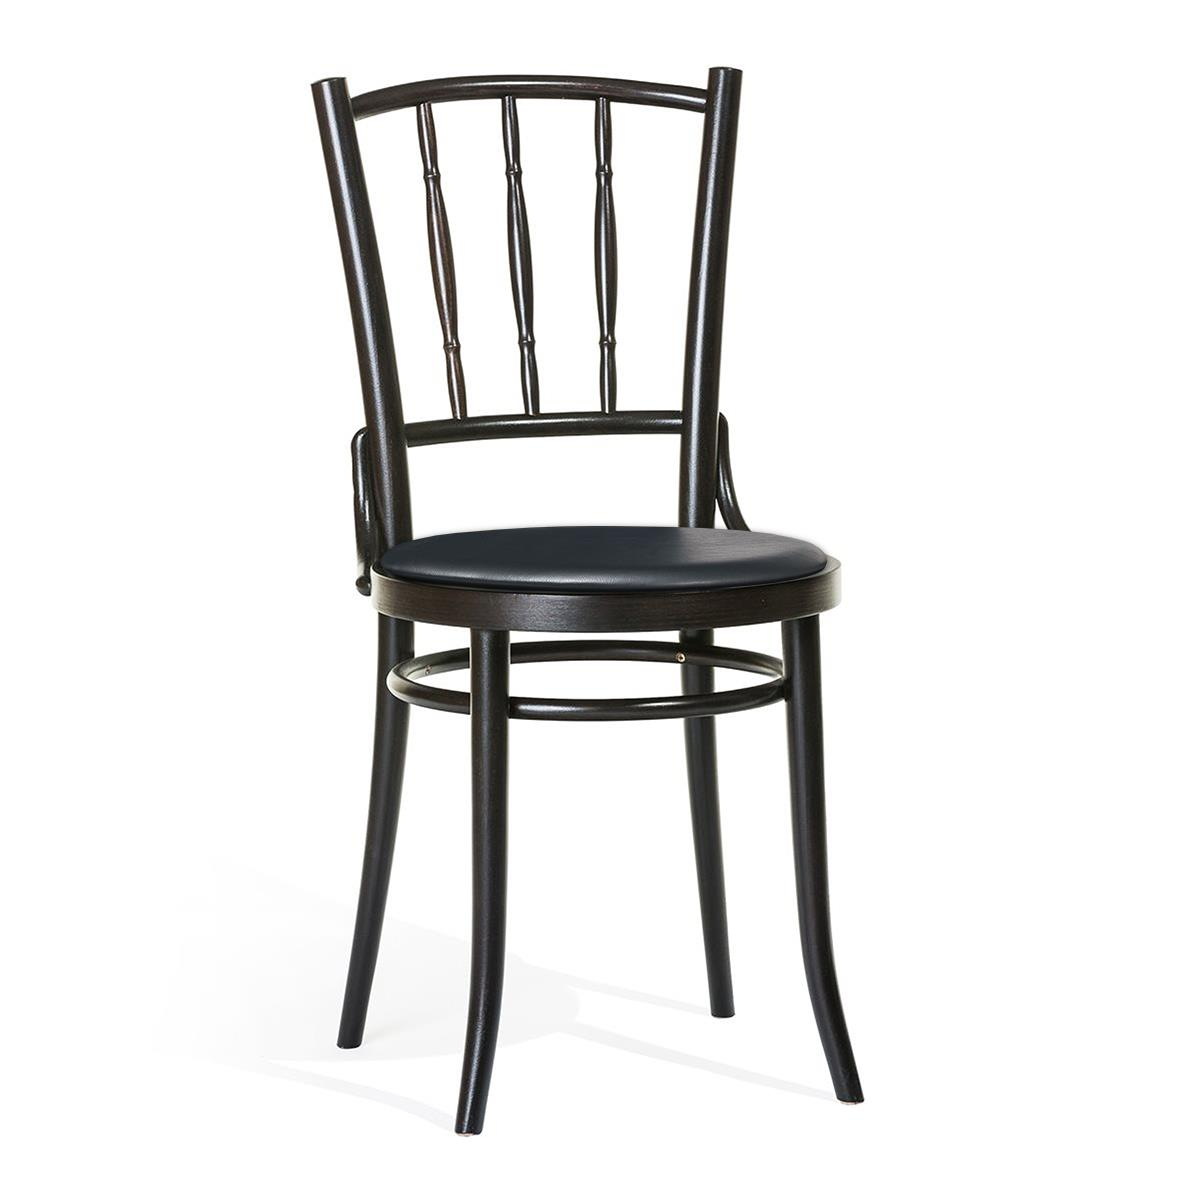 Chair Dejavu 378 (313 378)